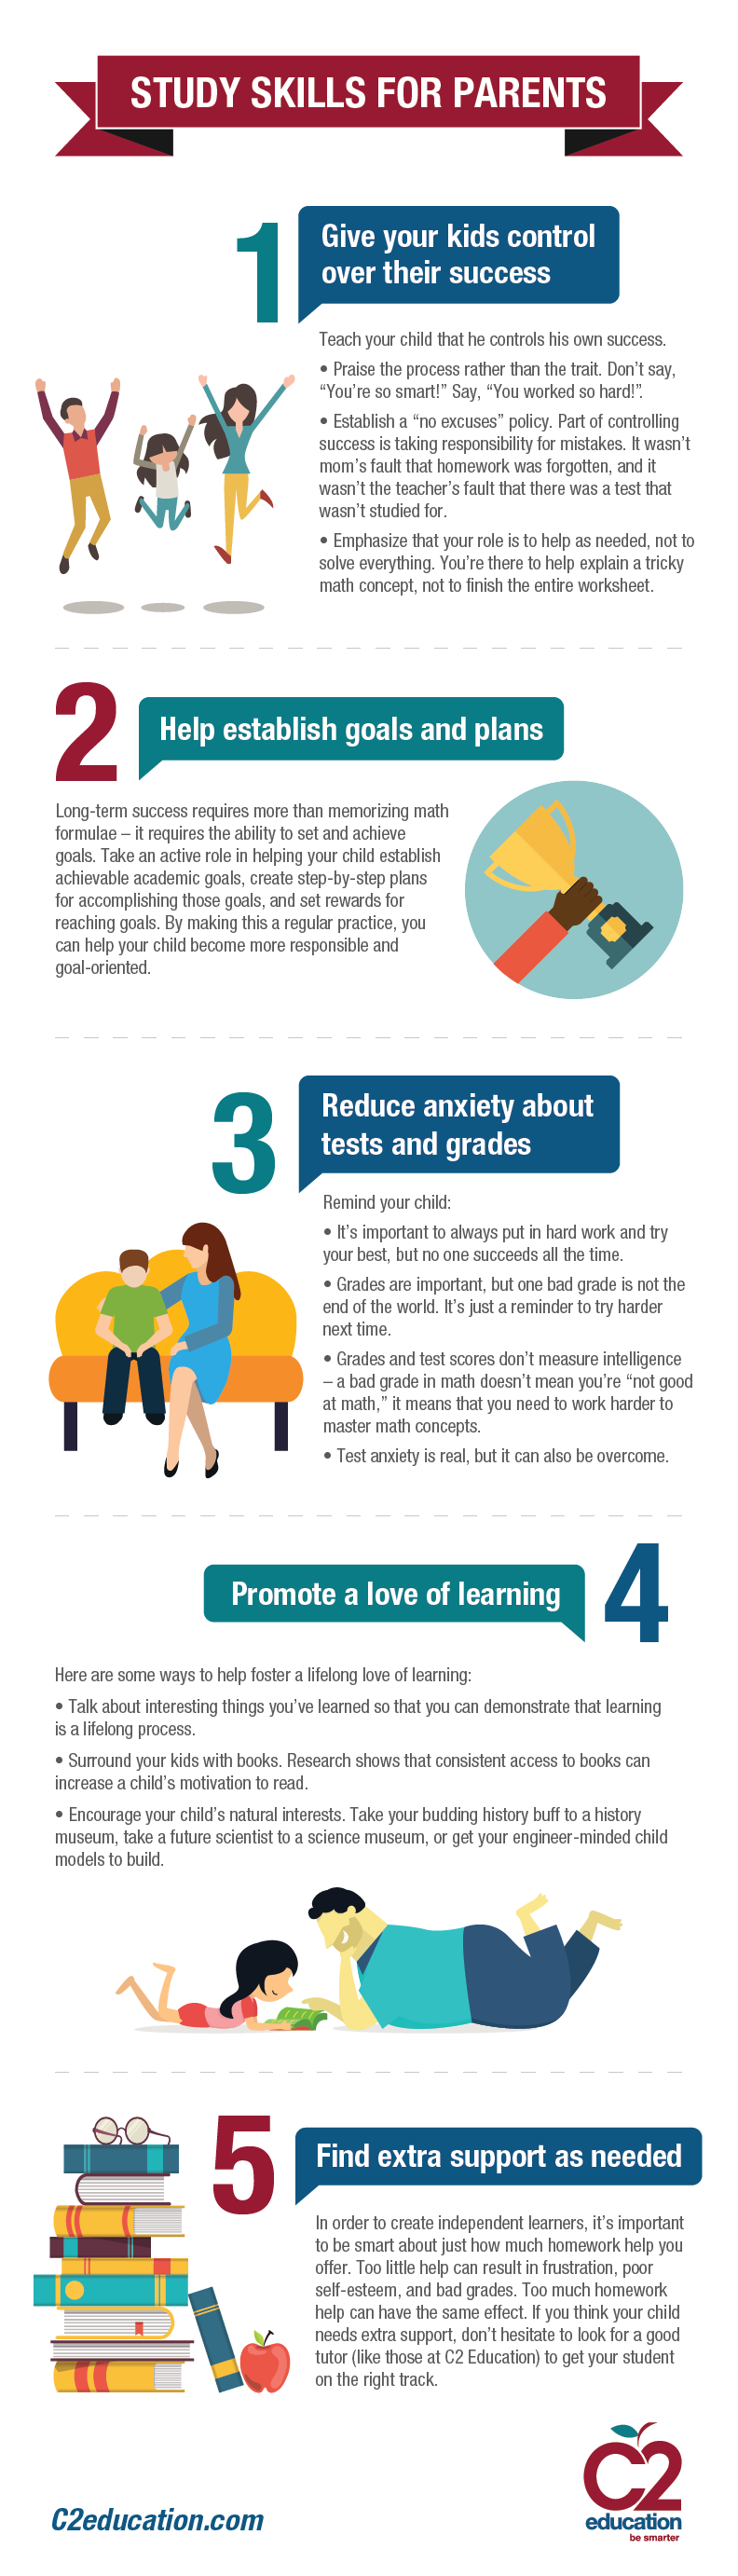 Study Skills for Parents | C2 Education